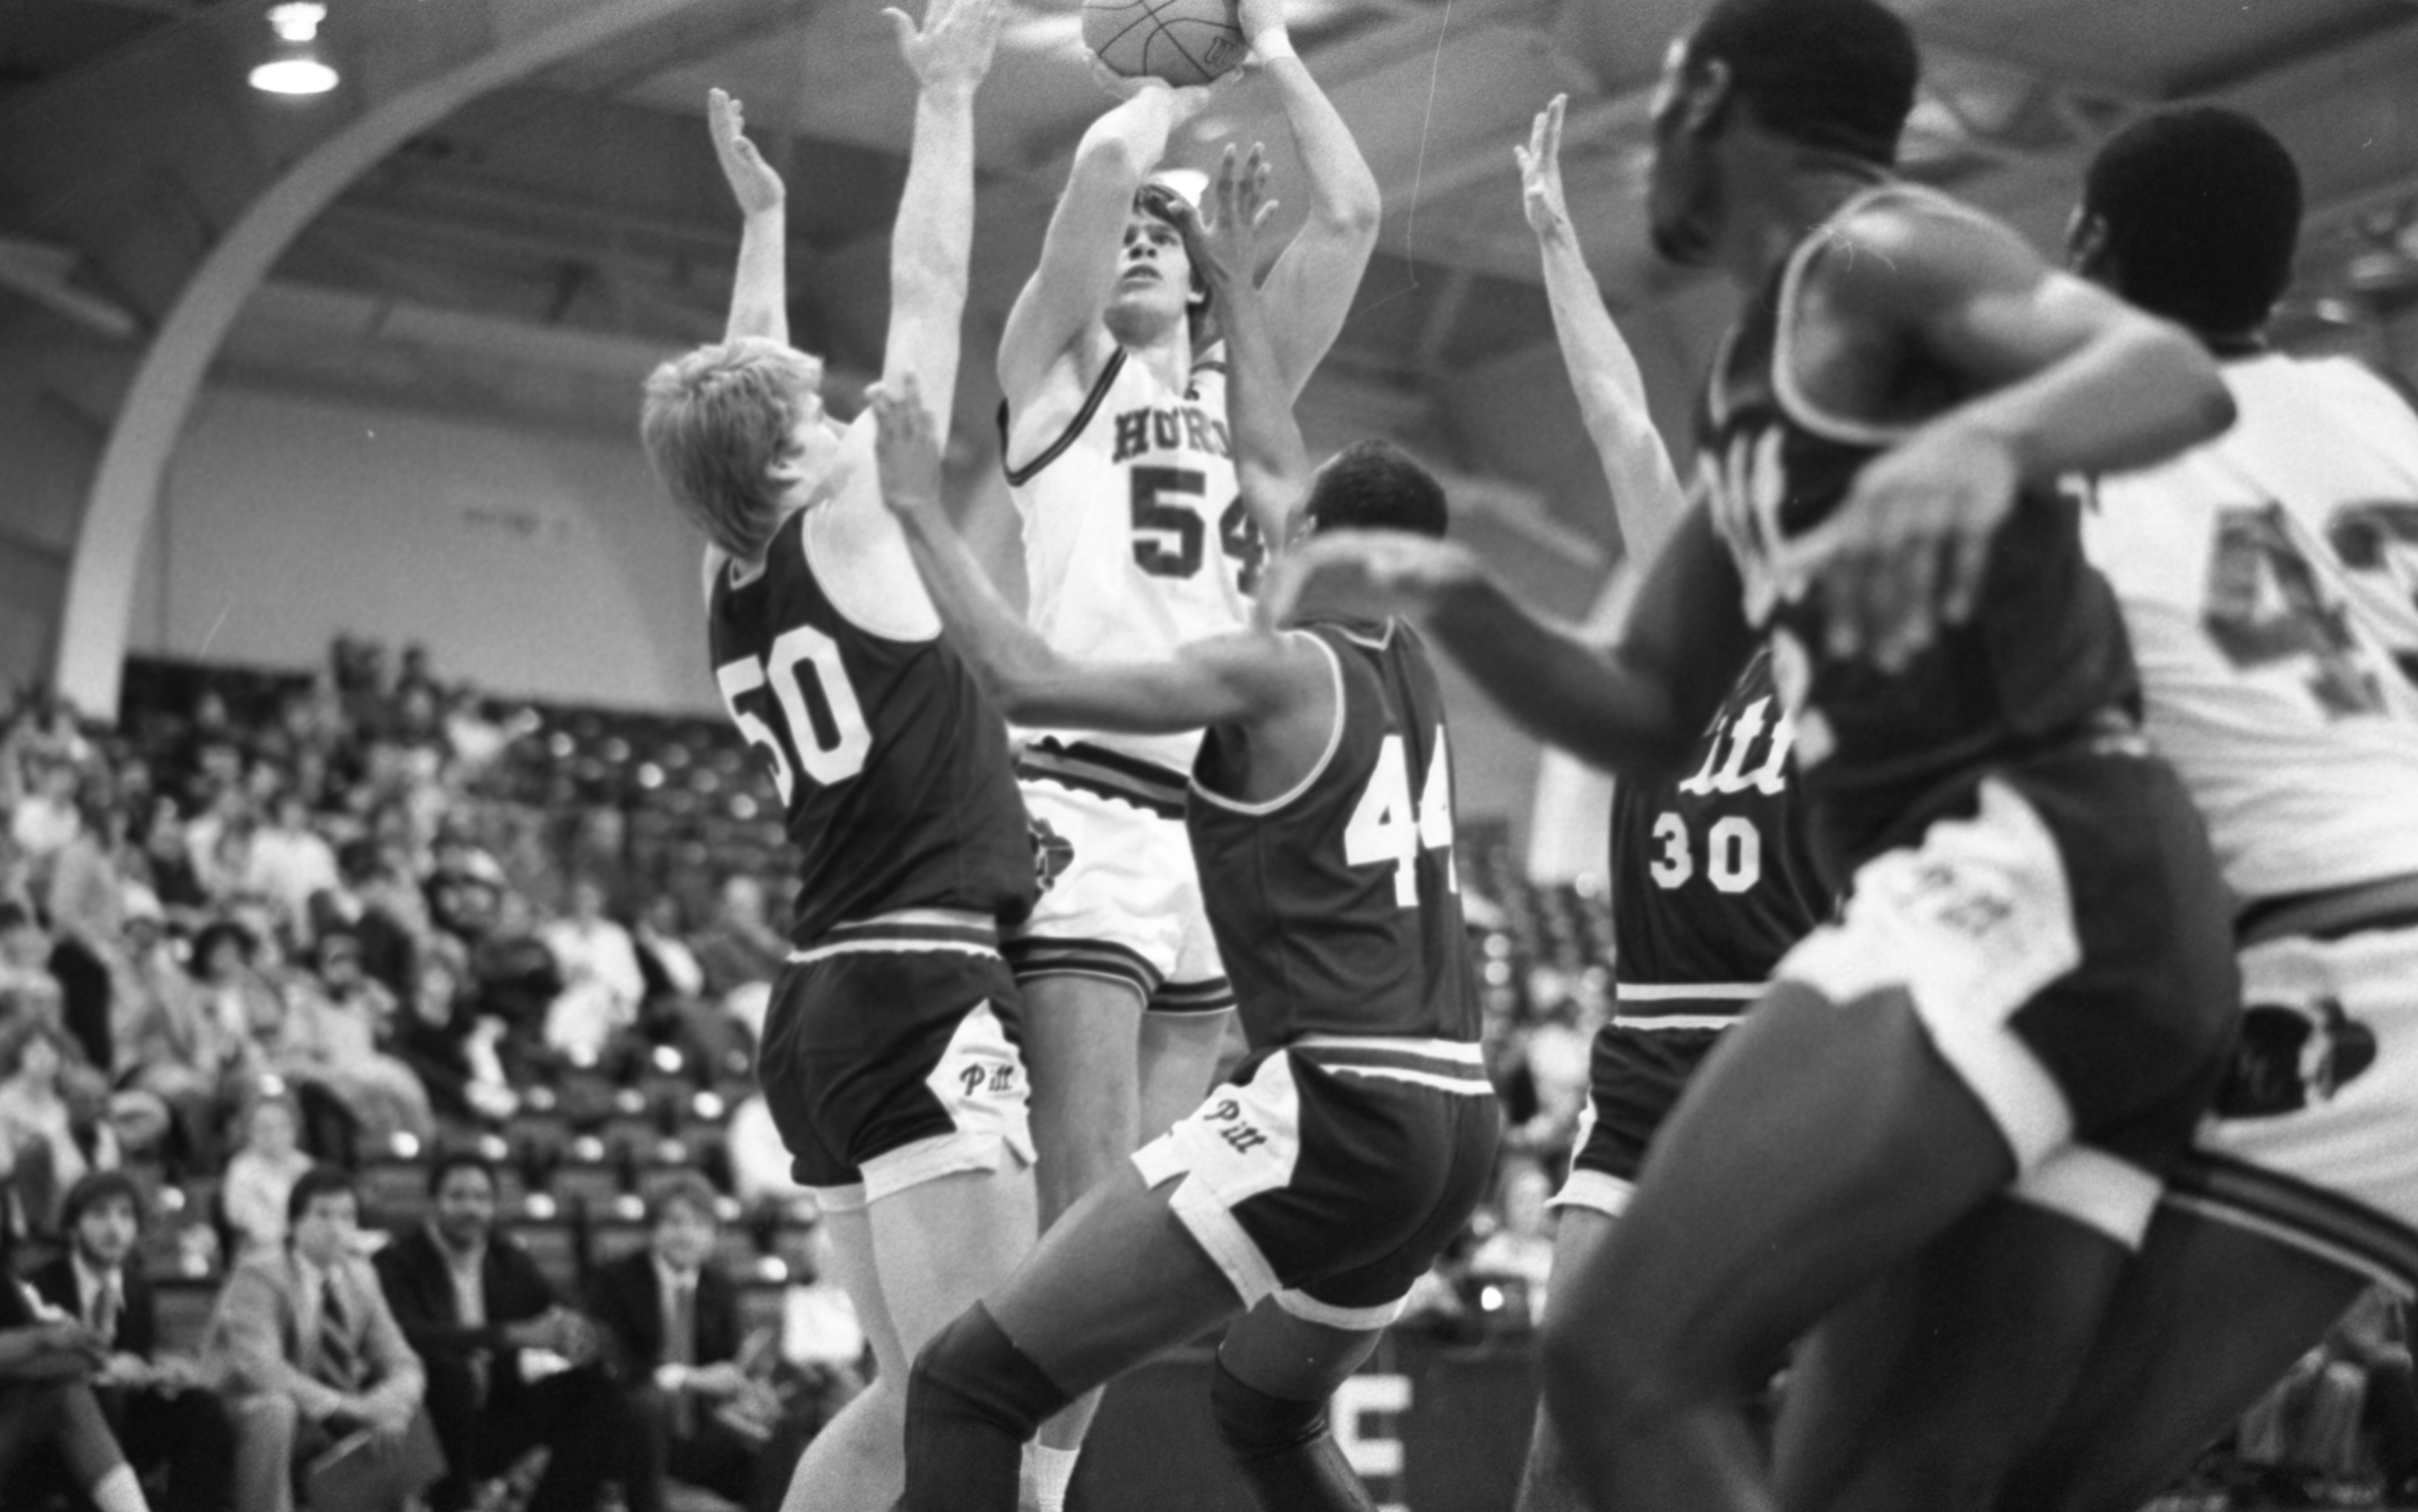 Dave Lazear Takes A Shot At EMU vs University Of Pittsburgh Basketball Game, December 1982 image